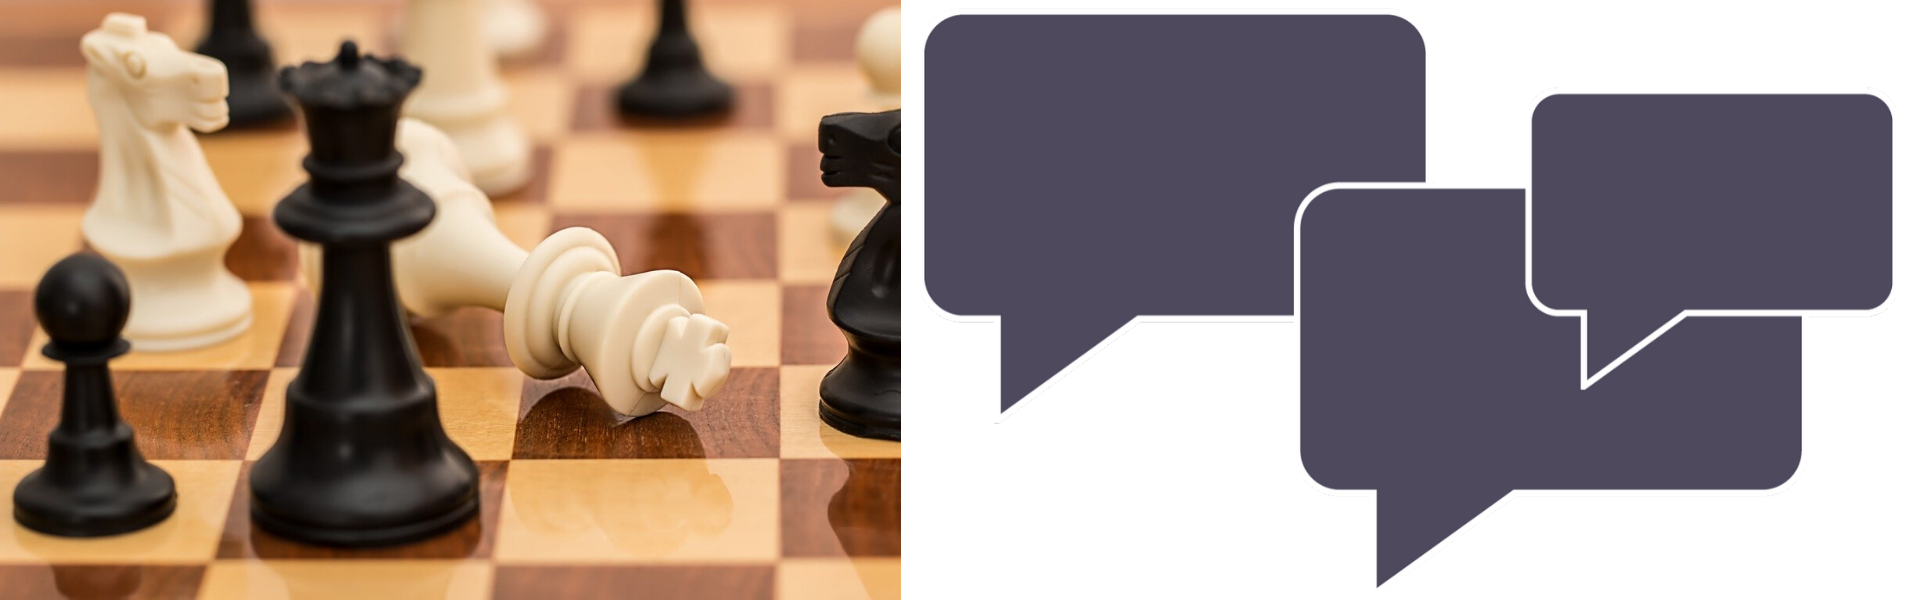 what to do when competitors comment on your posts